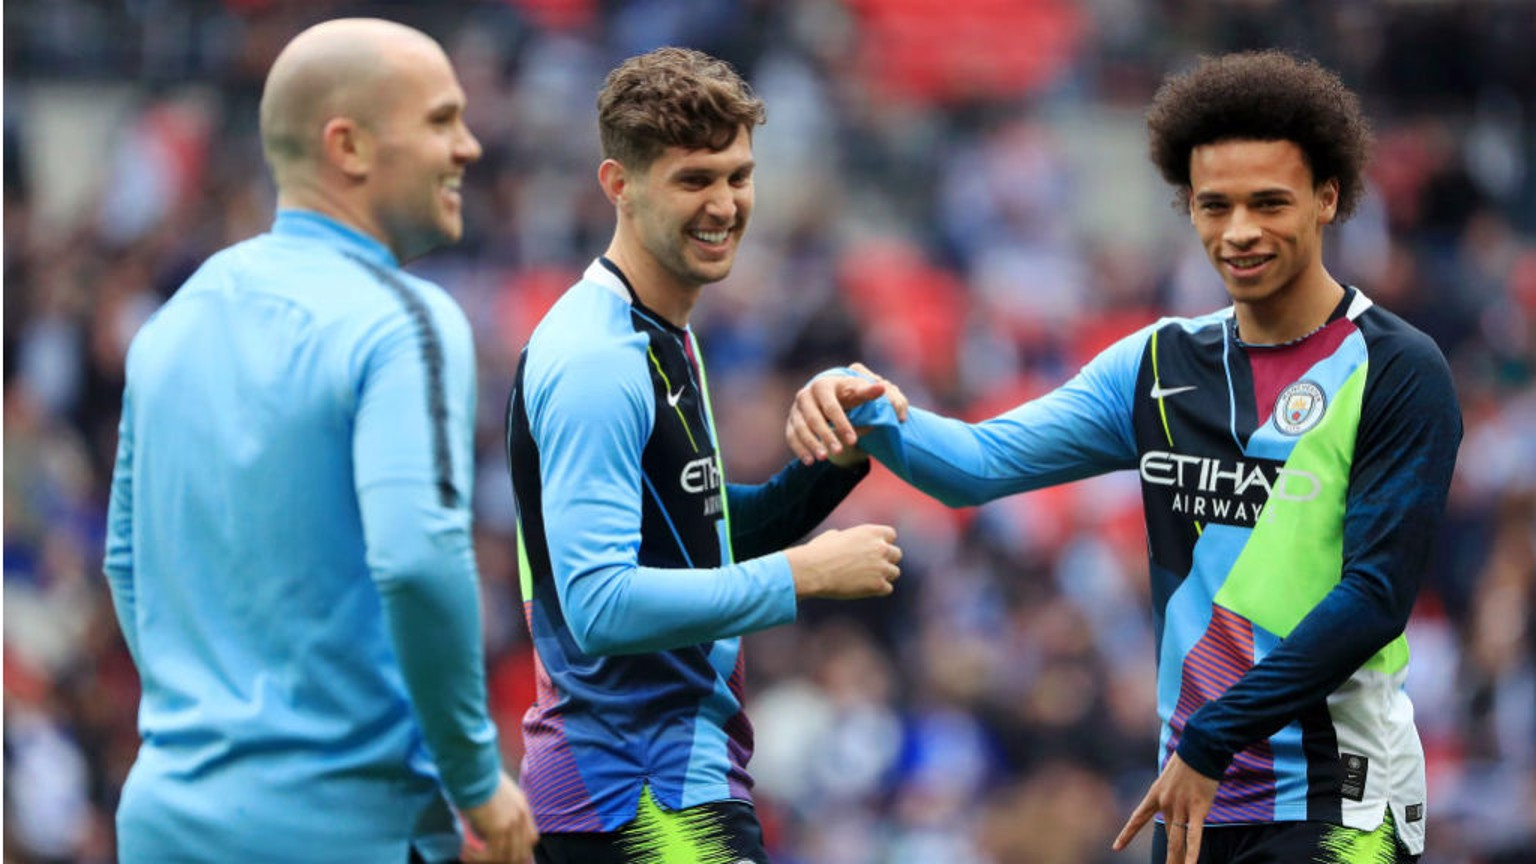 MASH IT UP: John Stones and Leroy Sane both cut quite a dash during the warm-ups in our Nike celebration mash-up jersey